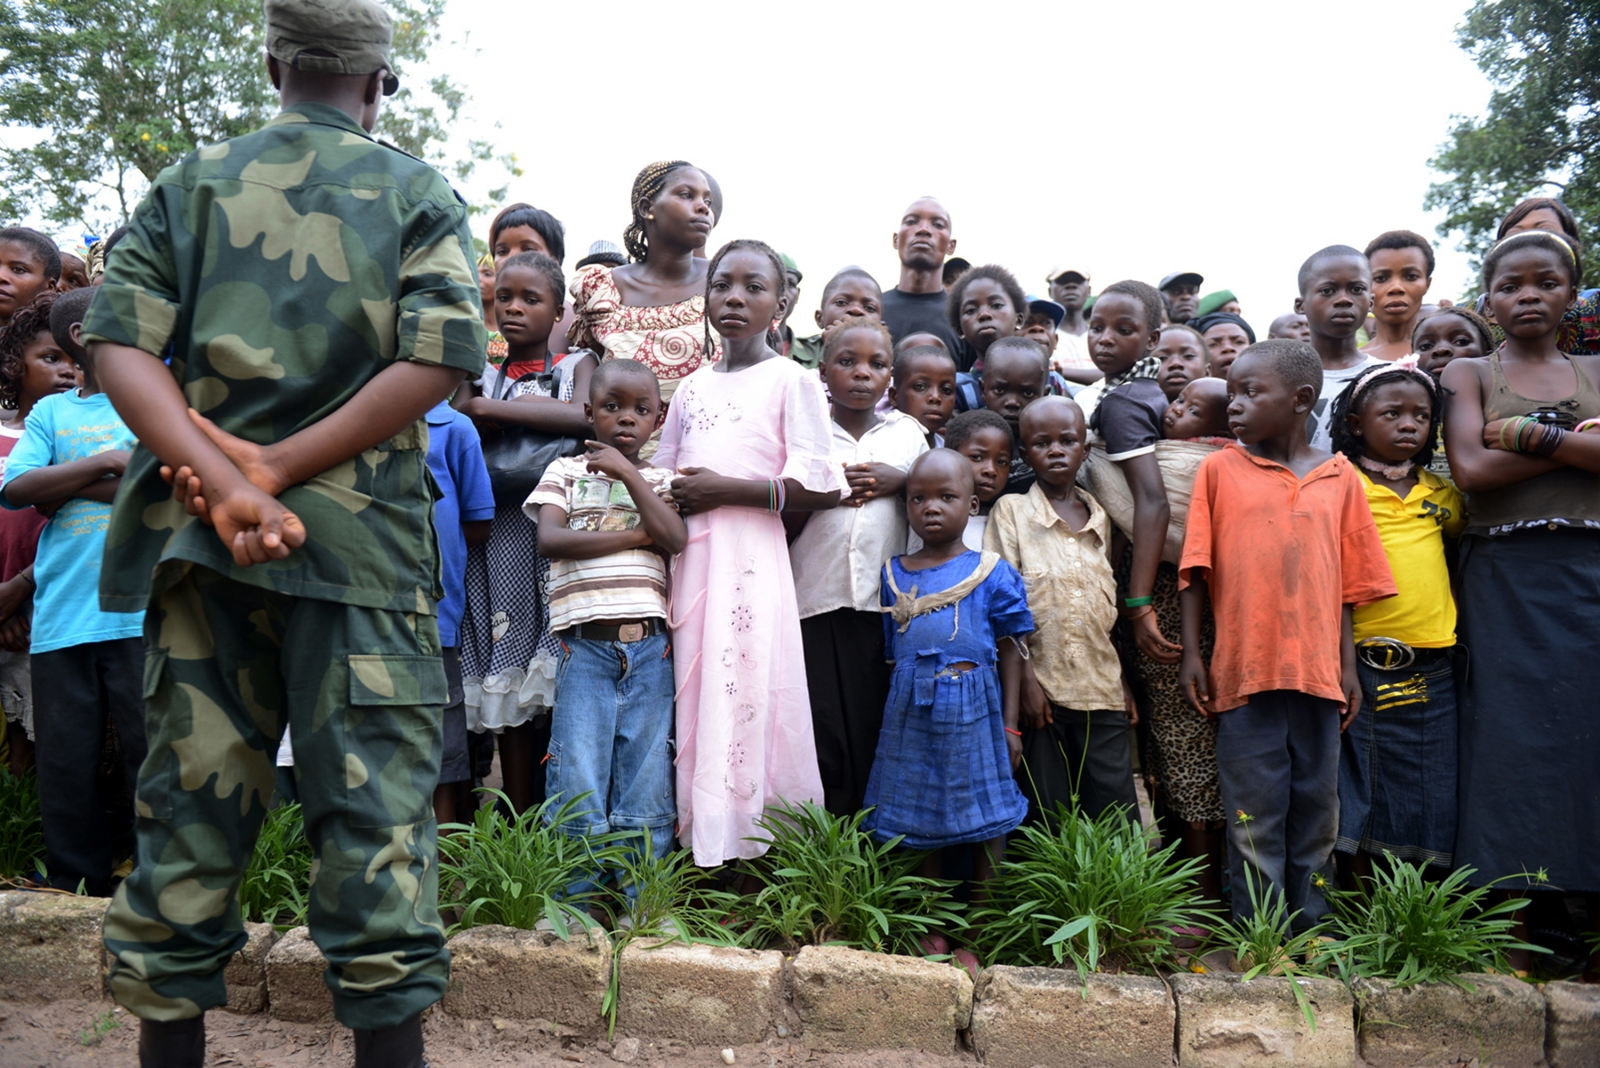 Victims 'summarily executed by the army' claim witnesses in DRC's Kasai provinces